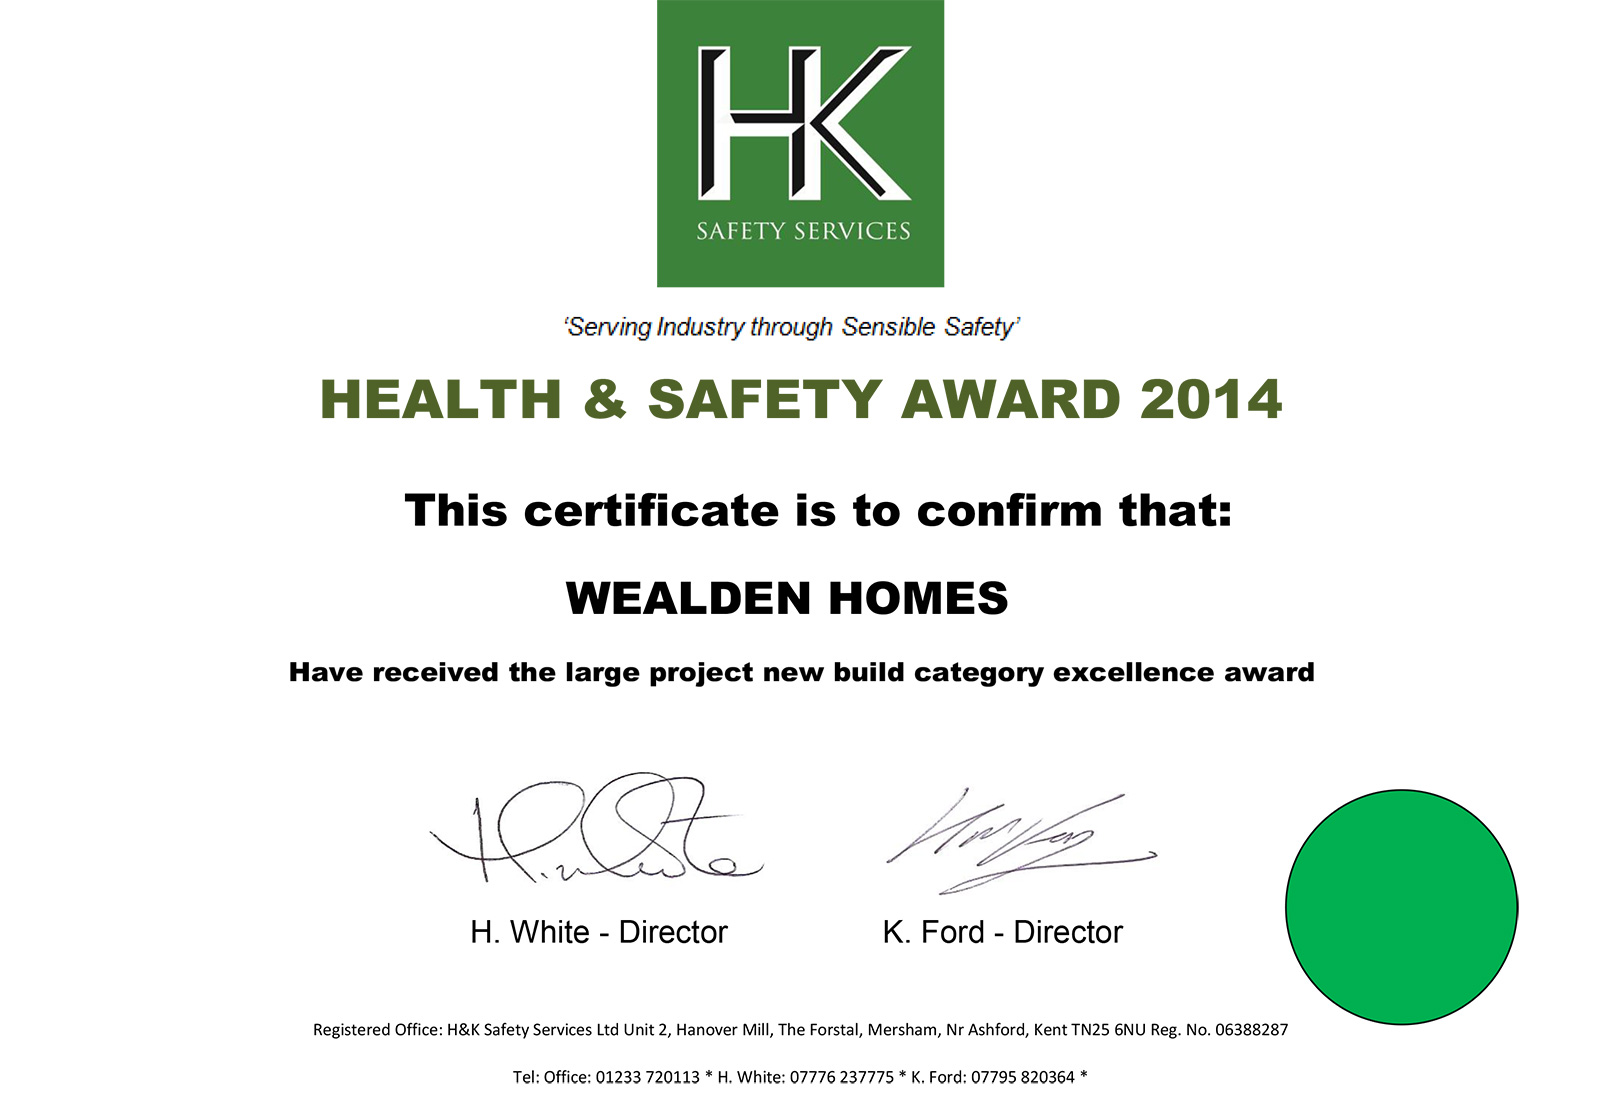 Health and Safety Award 2014